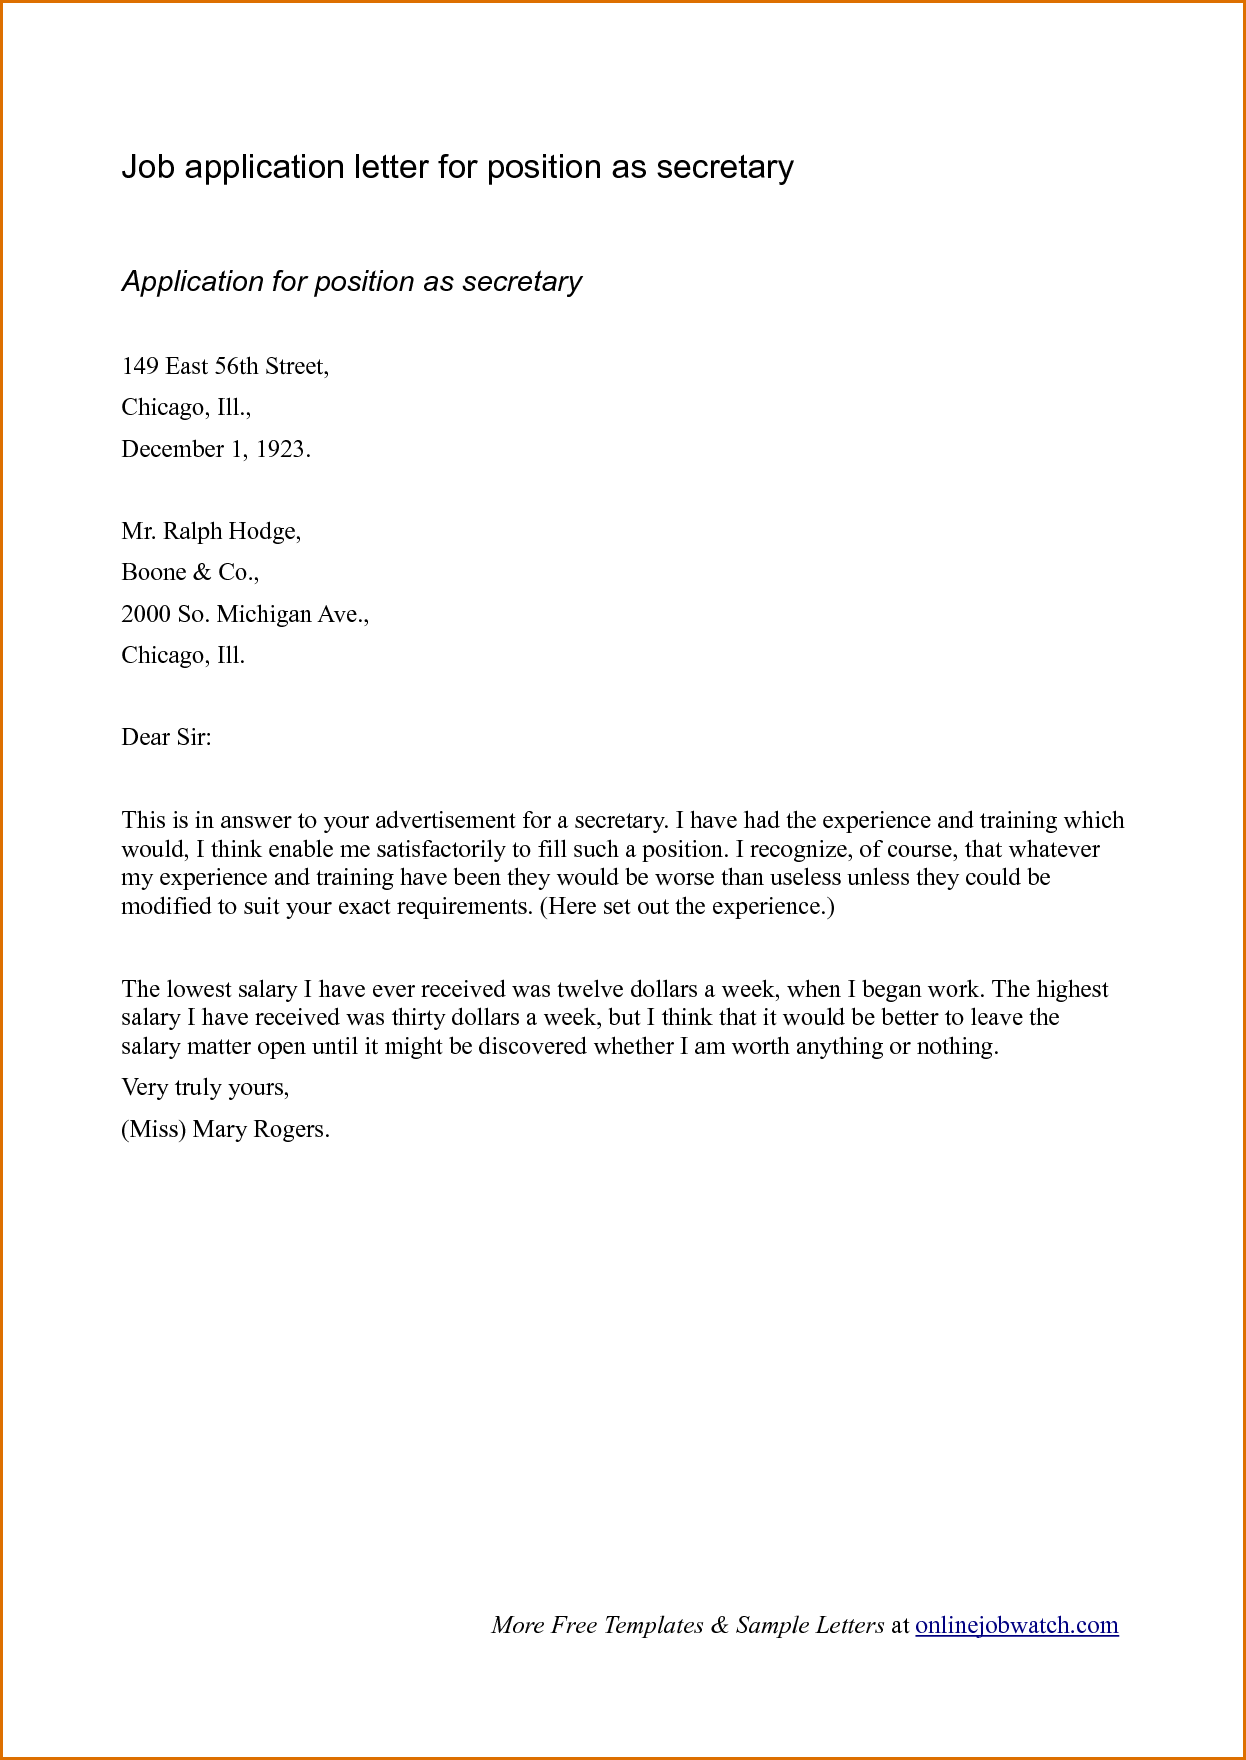 Sample cover letter format for job application for What to write on a covering letter for a job